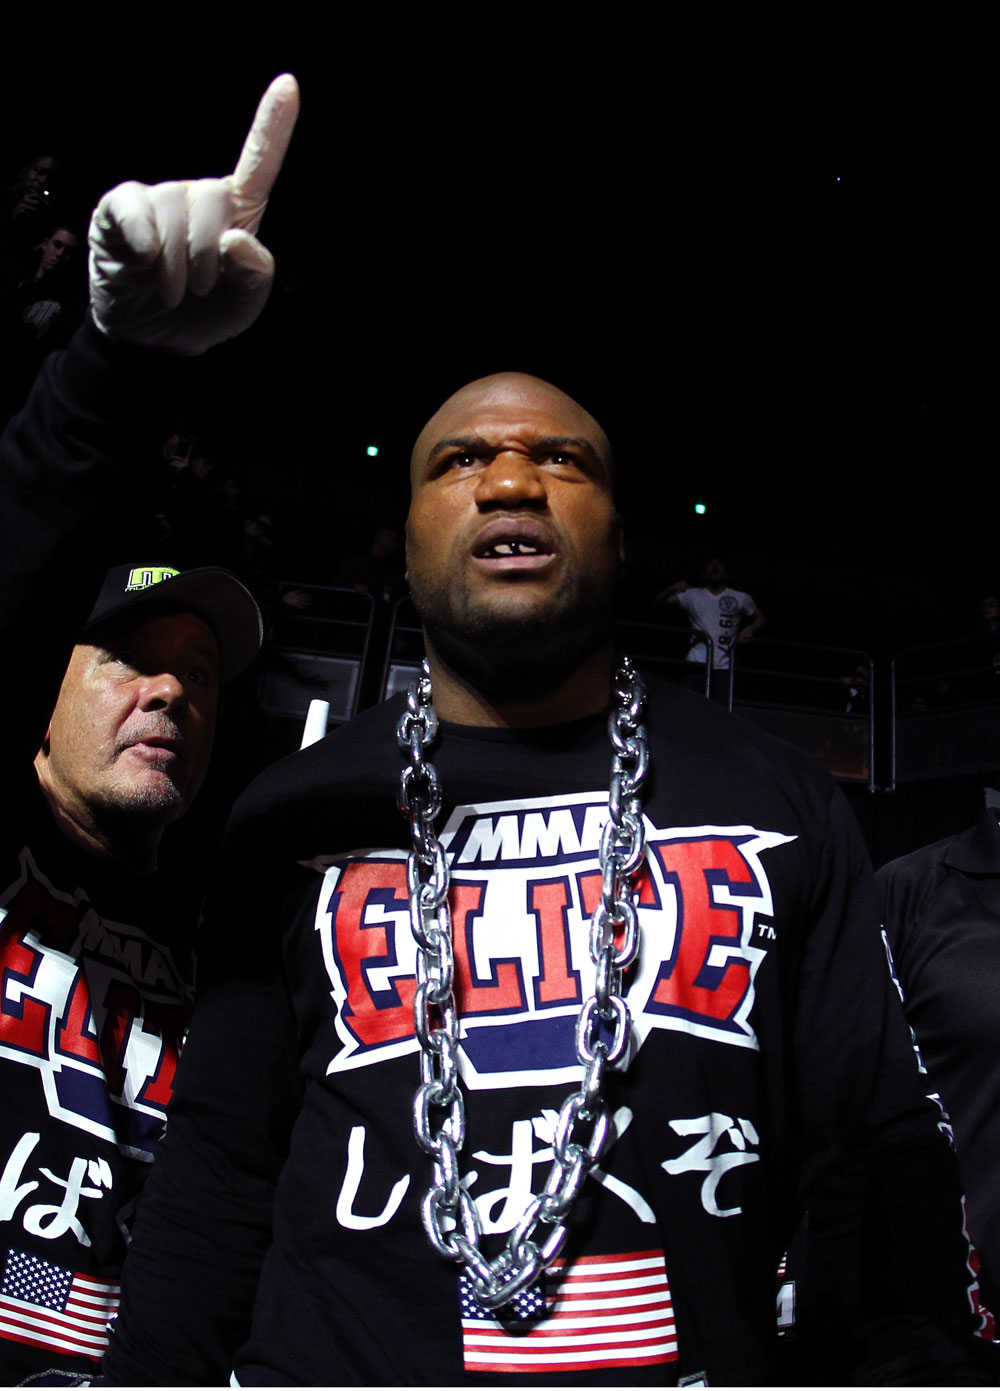 "SAITAMA, JAPAN - FEBRUARY 26:  Quinton ""Rampage"" Jackson enters the arena before his bout against Ryan Bader during the UFC 144 event at Saitama Super Arena on February 26, 2012 in Saitama, Japan.  (Photo by Al Bello/Zuffa LLC/Zuffa LLC via Getty Images) *** Local Caption *** Quinton Jackson"